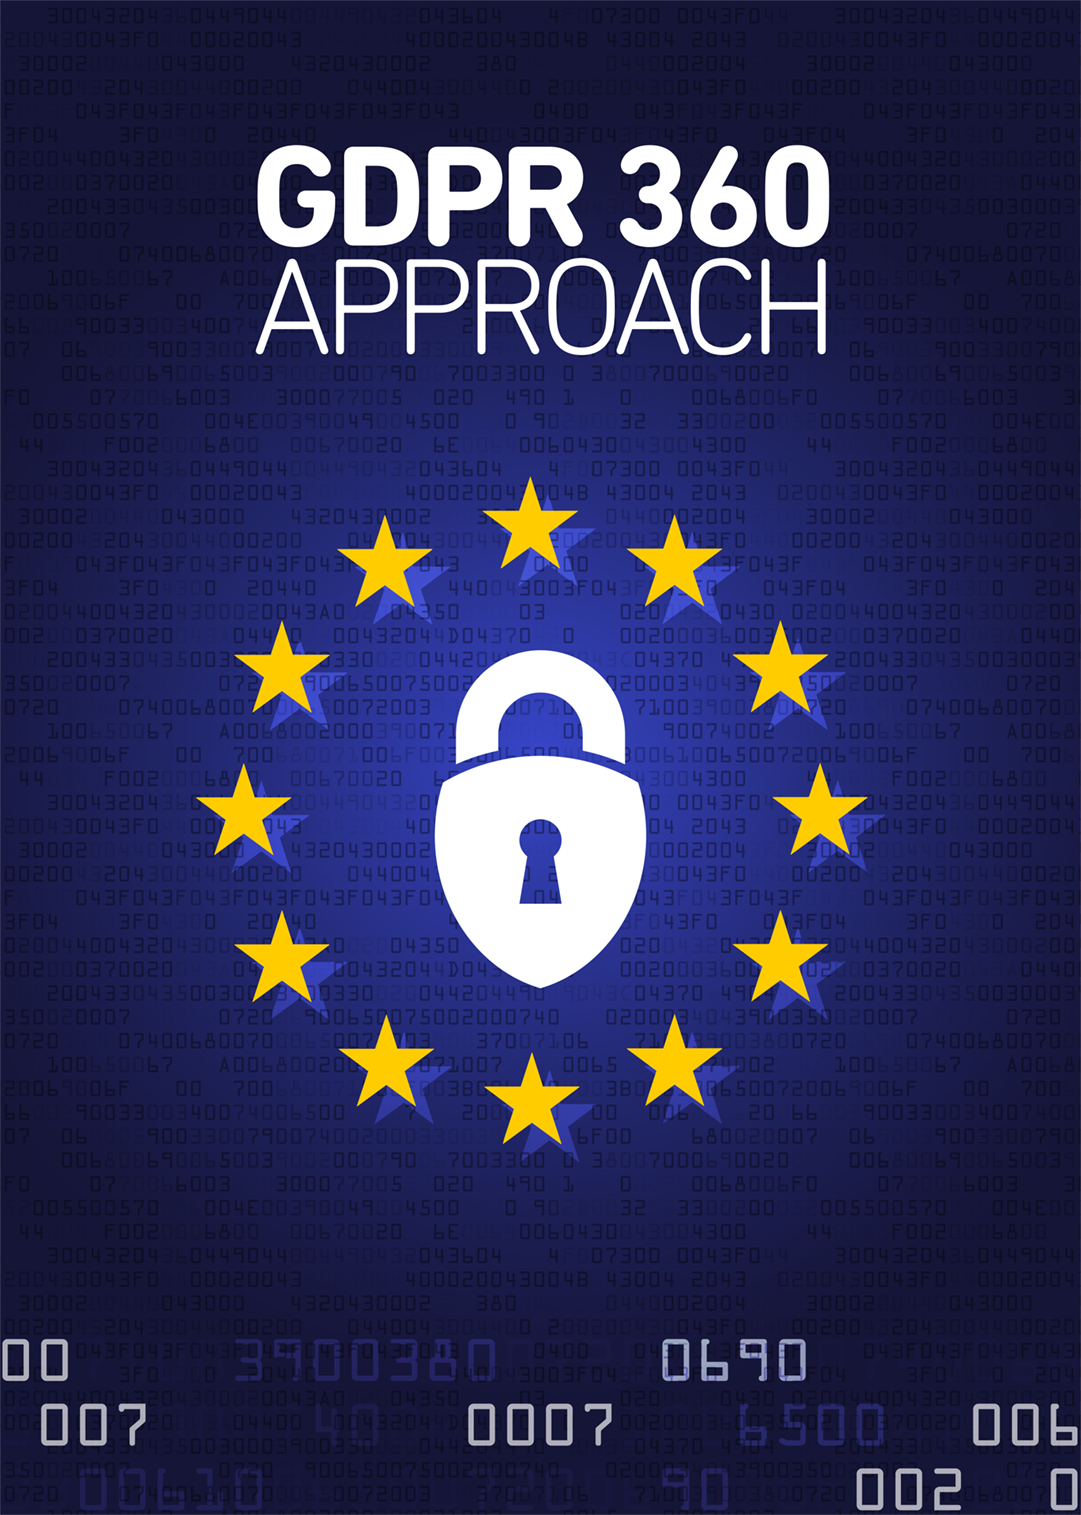 GDPR 360 Approach: Un nou concept inovativ oferit de Zipper